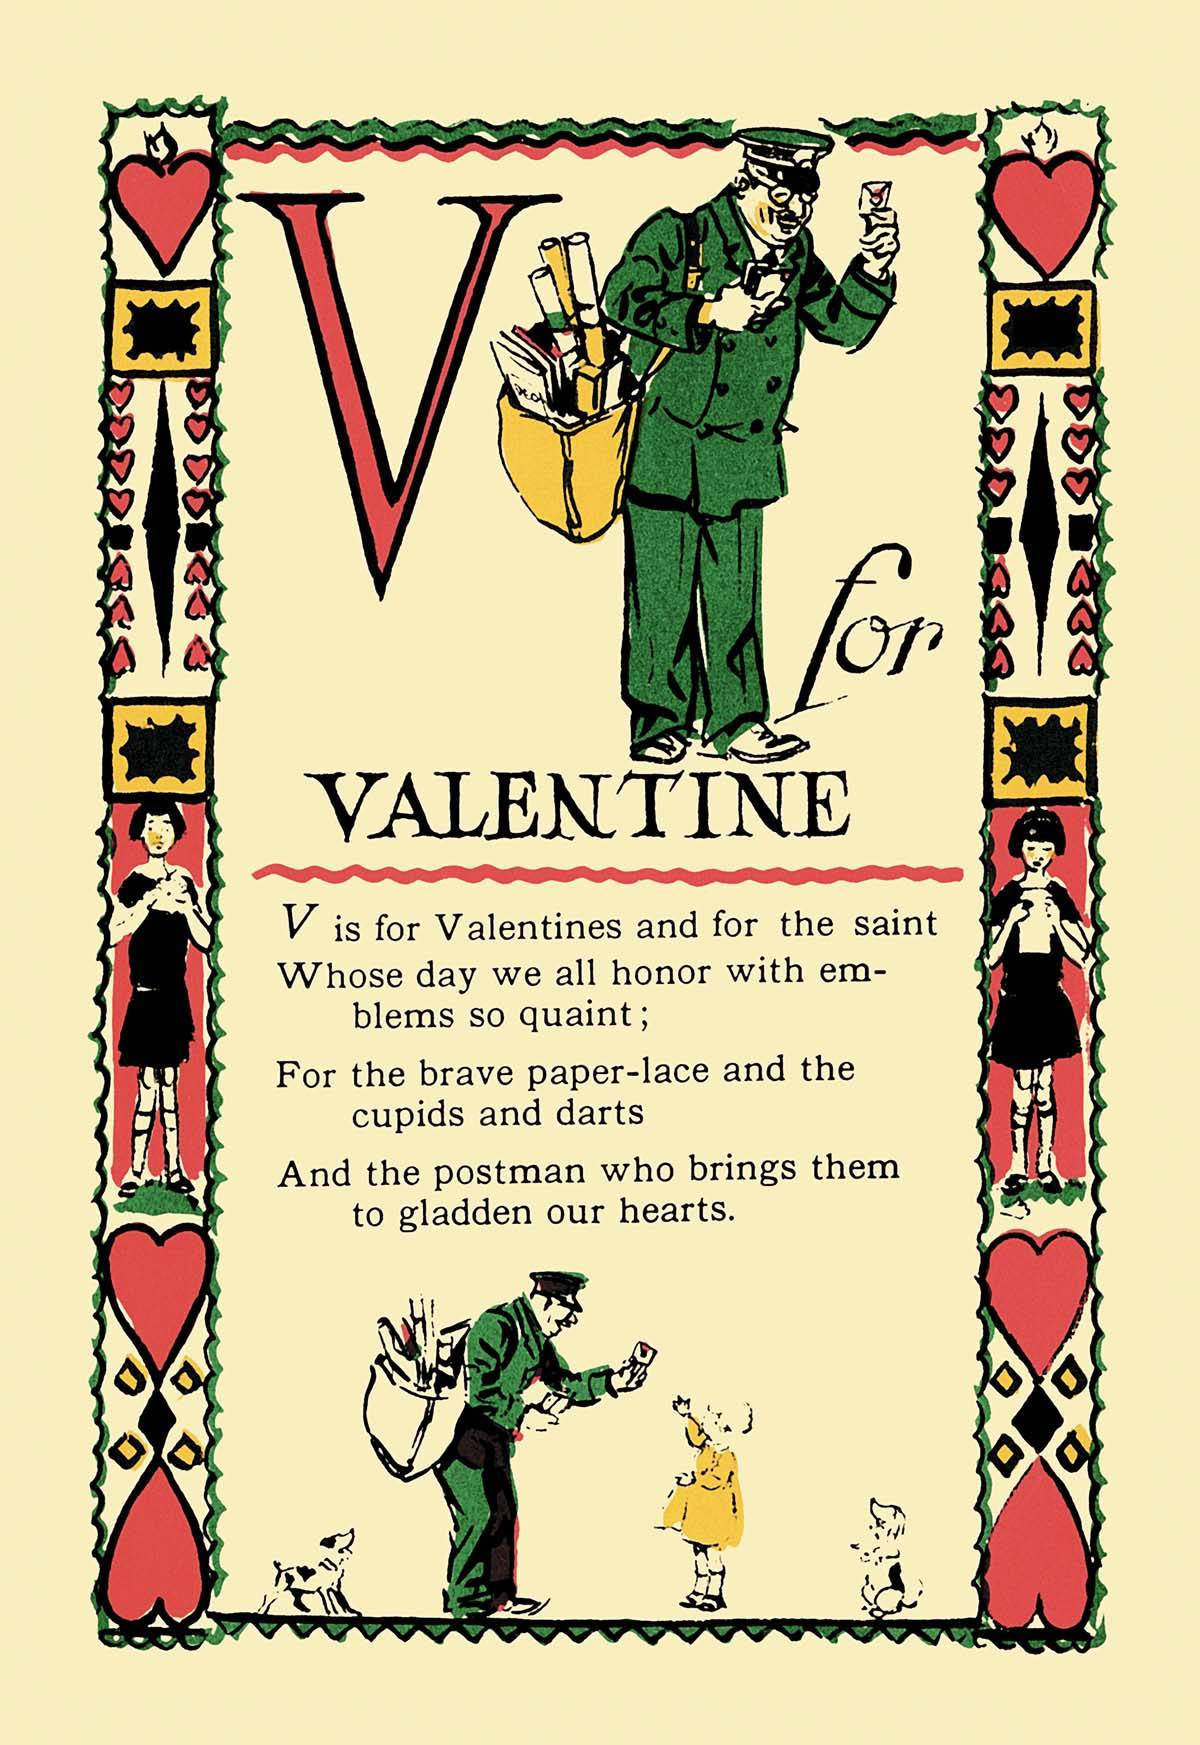 Book Cover Art Canvas ~ V for valentine posters and canvas art prints vintage